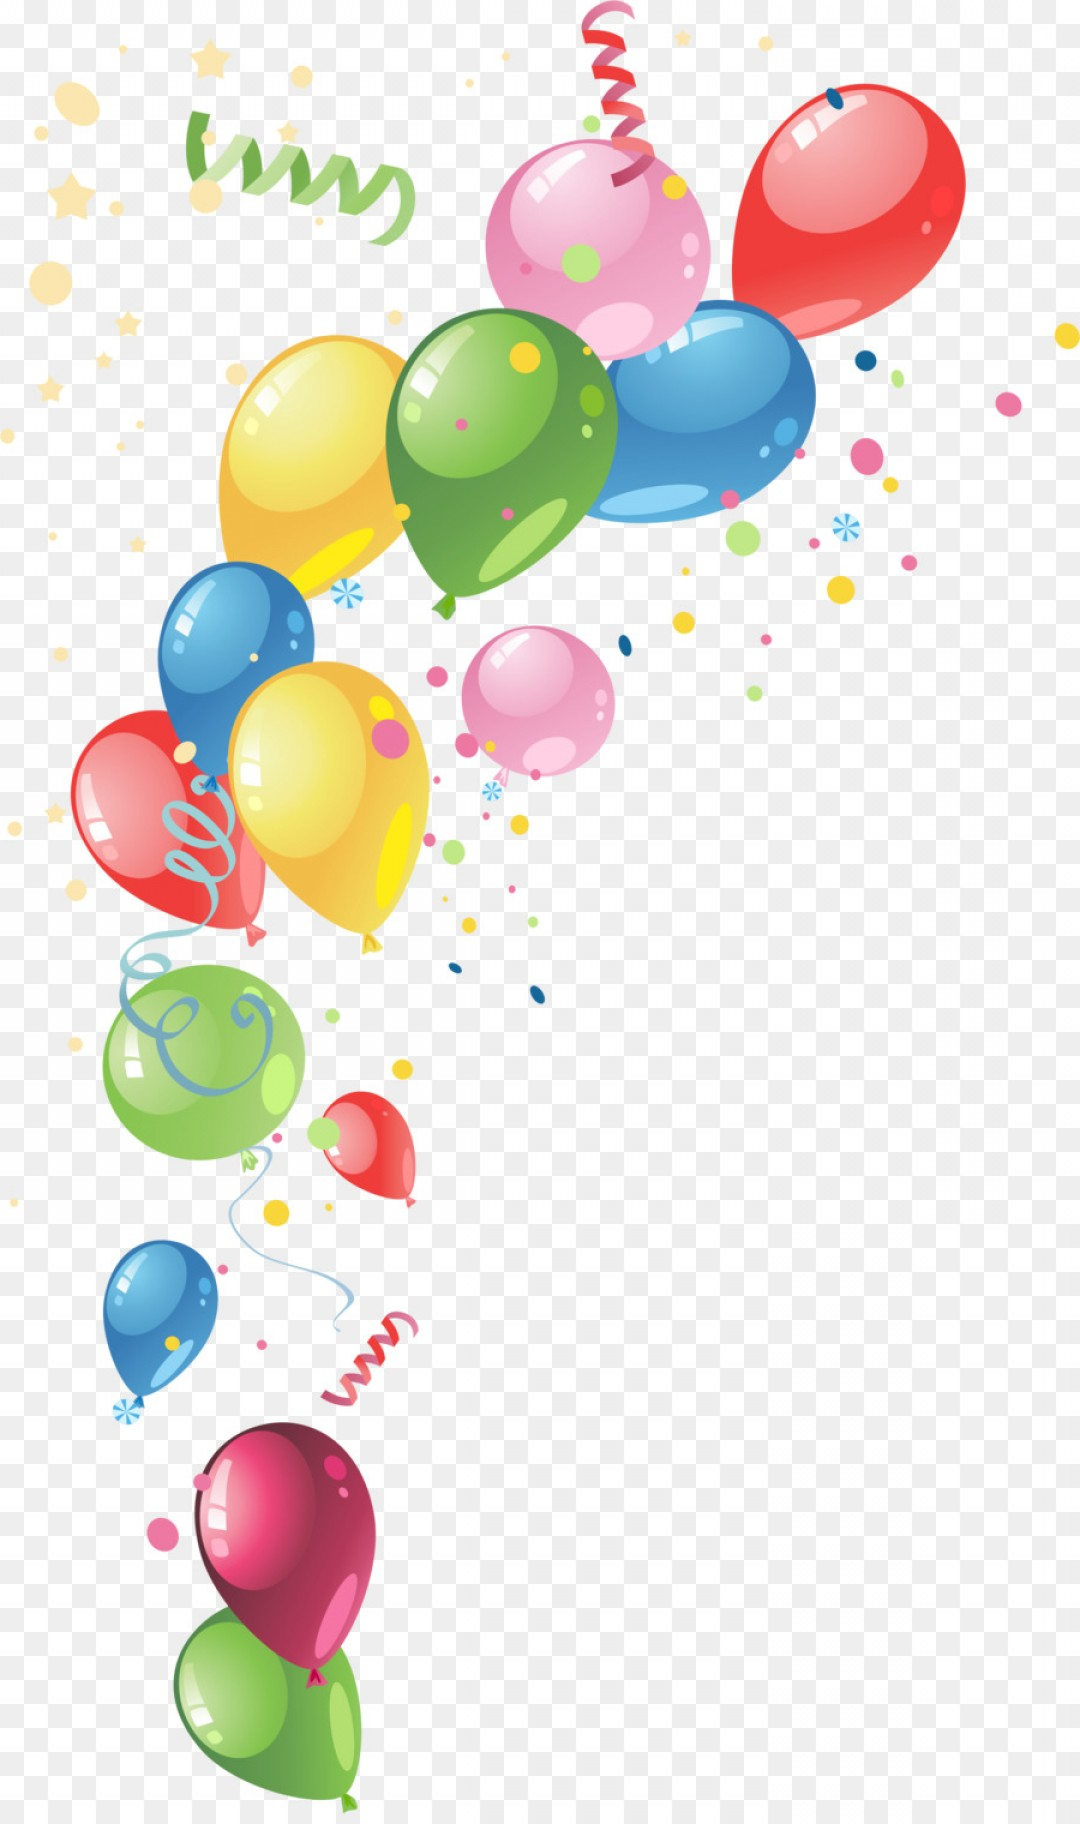 Celebration vector clipart clipart free Png Balloon Royalty Free Party Clip Art Vector Colorfu | SOIDERGI clipart free